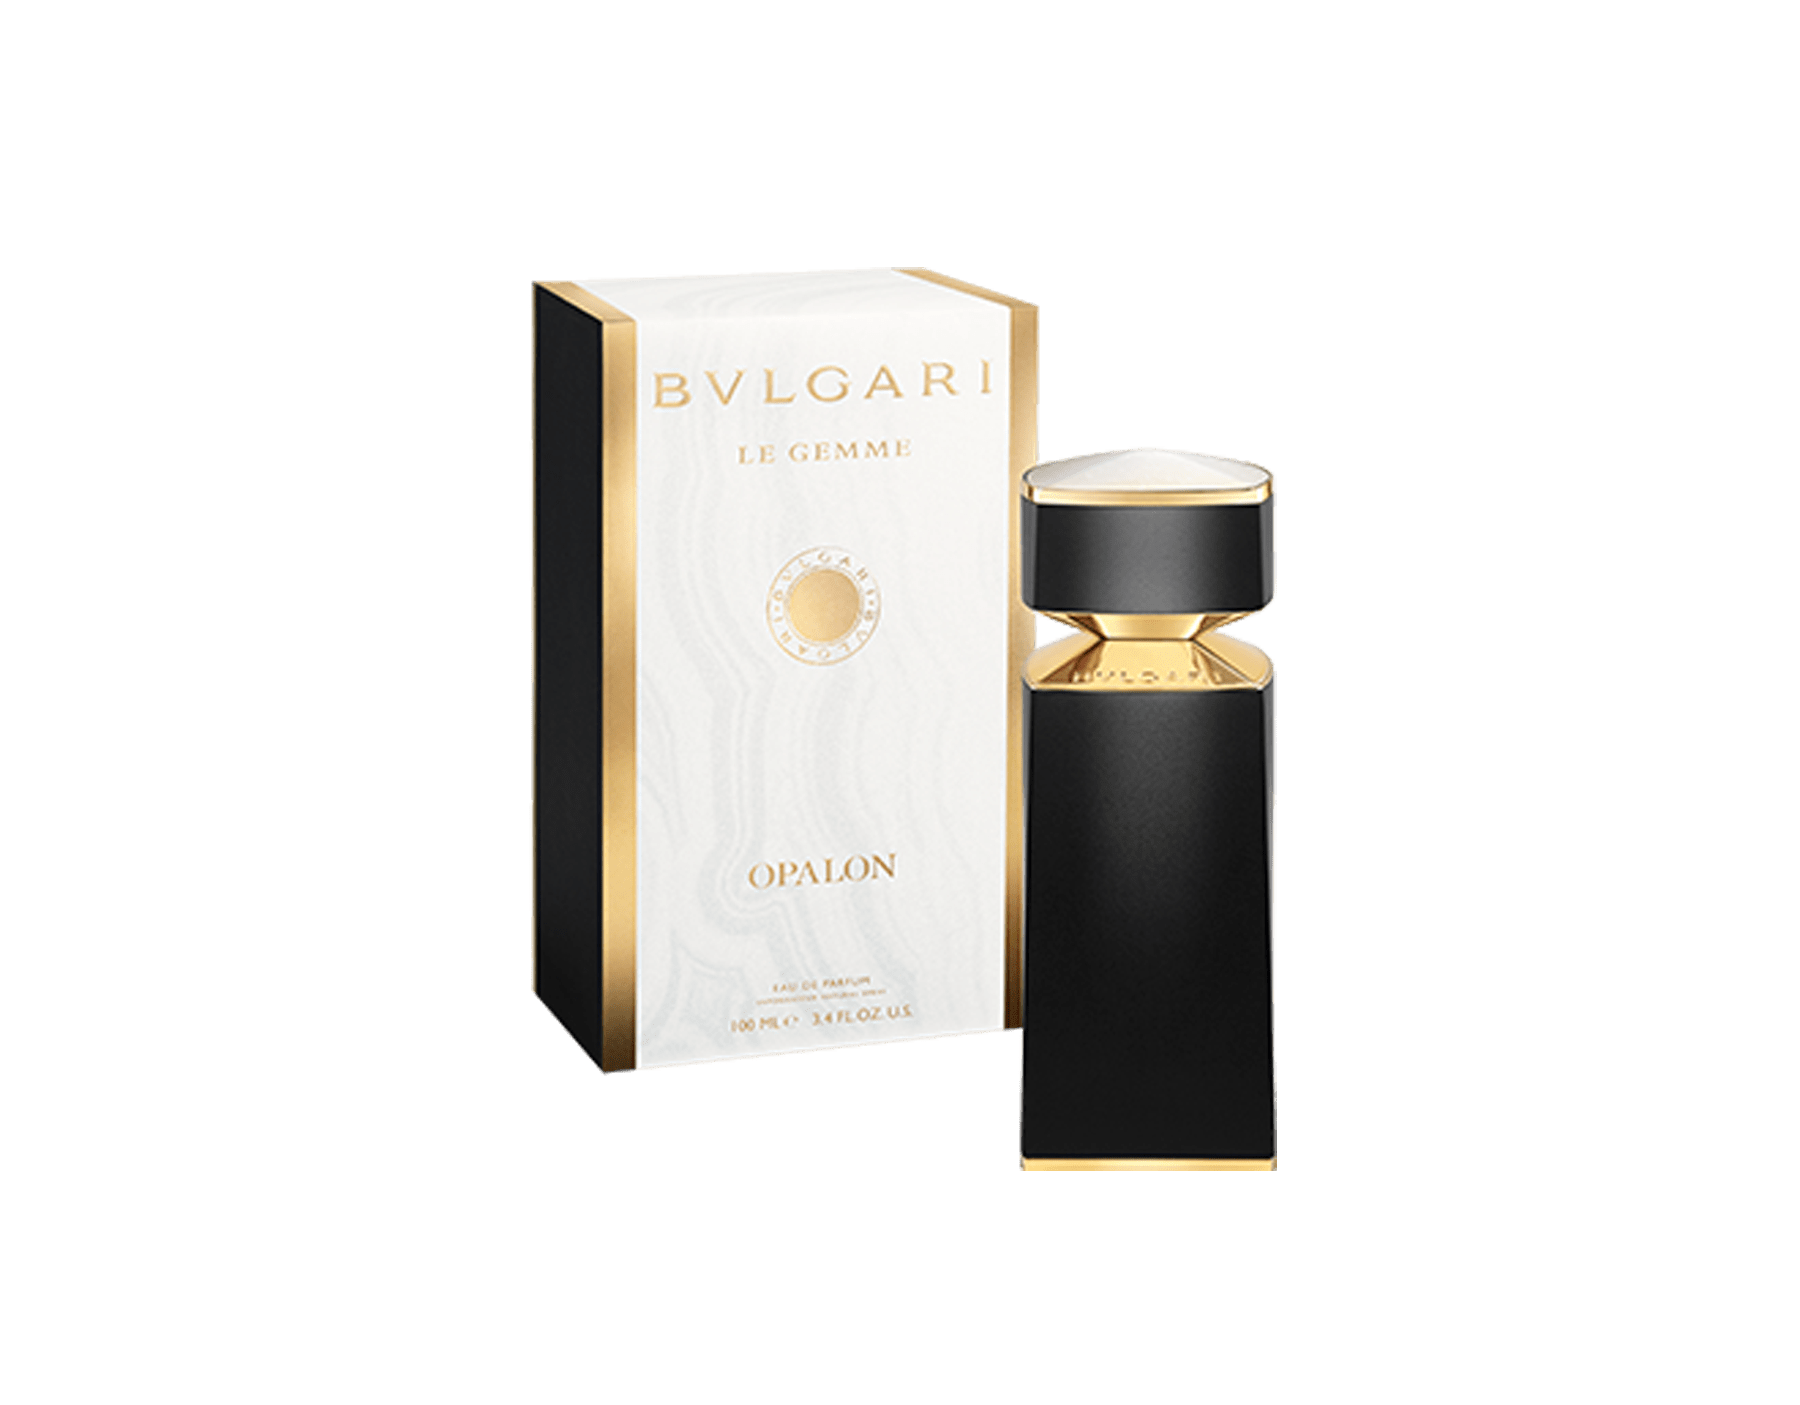 A pure and luxurious white musk Eau de Parfum exalted by a profusion of neroli and a rich ambergris dry down note. 40167 image 2